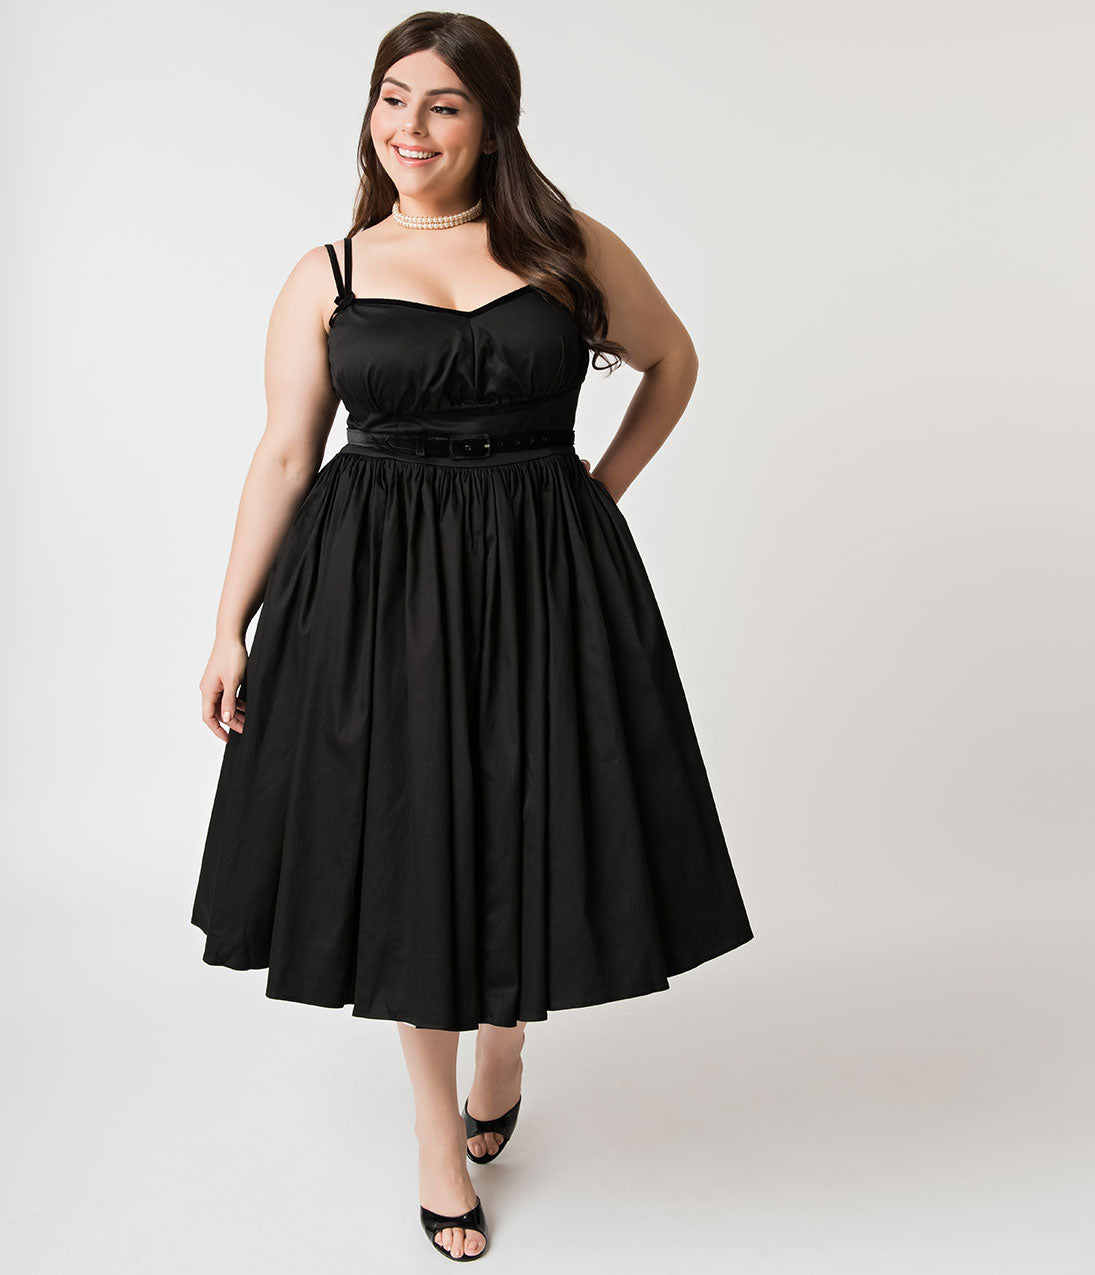 Plus Size Pin Up Dresses | Plus Size Rockabilly Dresses